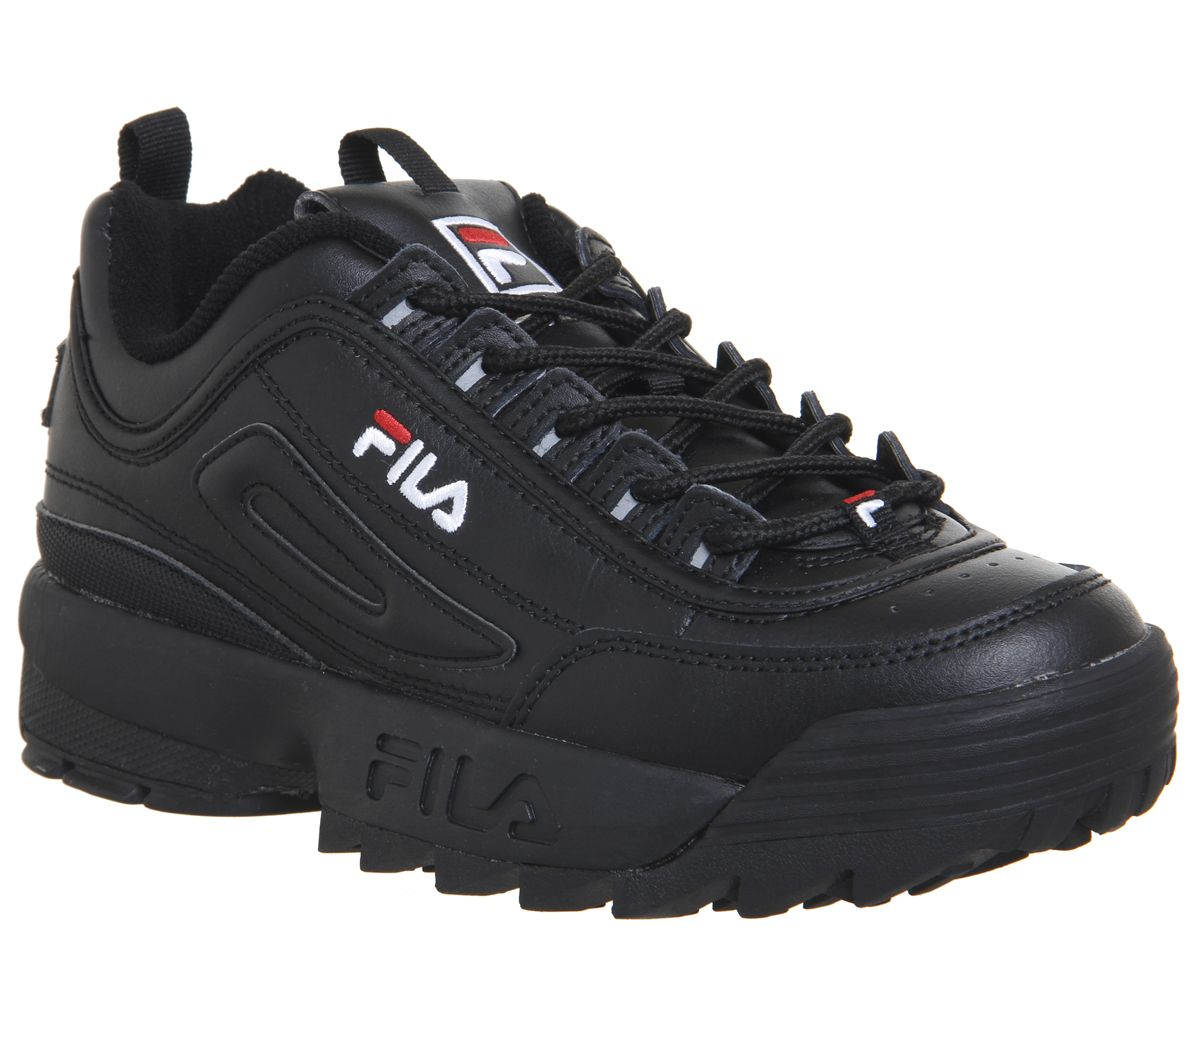 Details about Womens FILA DISRUPTOR II Sports Shoes Black Mono Sneakers-  show original title